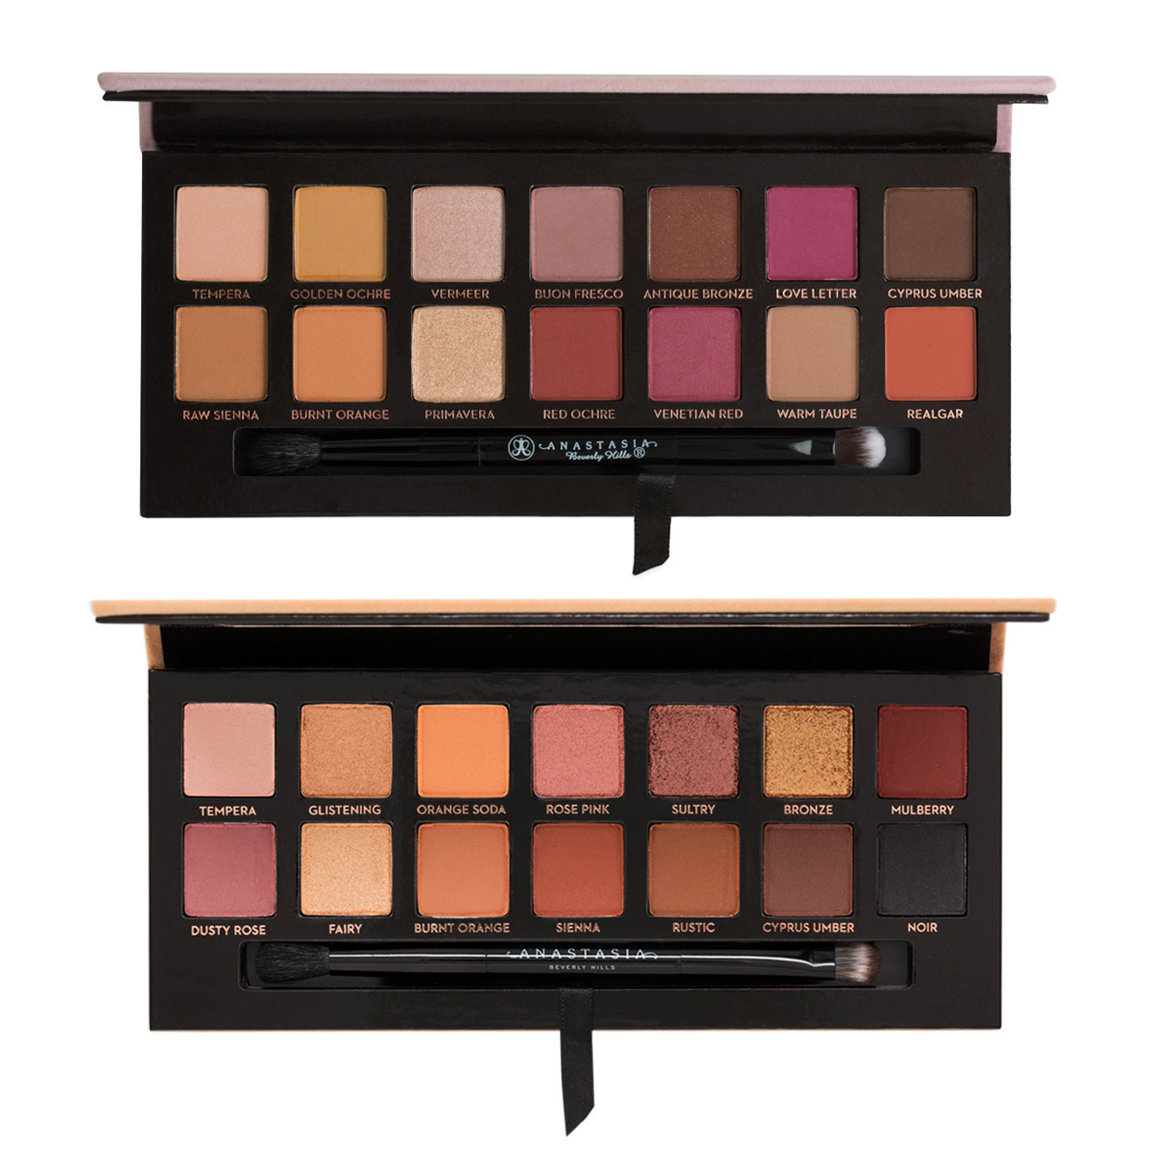 Save when you get Modern Renaissance and Soft Glam ($84 value)